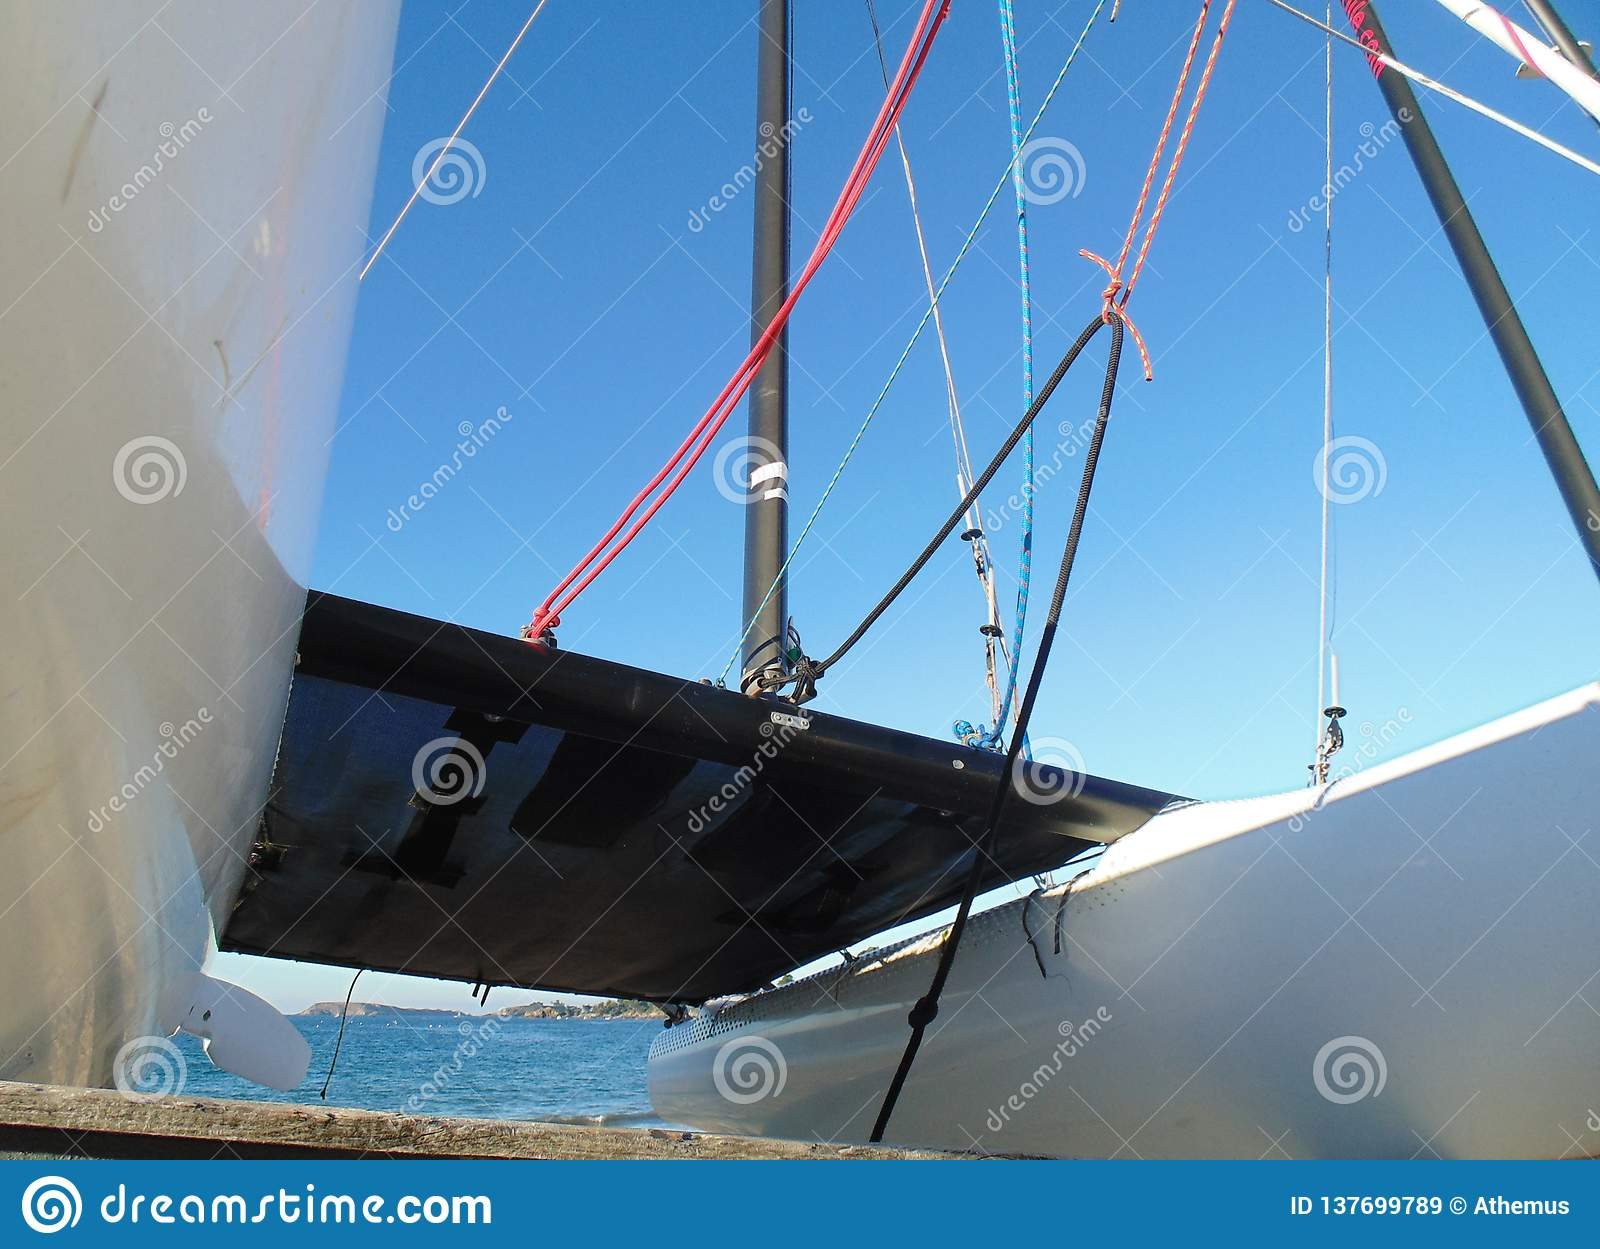 Just in front of the catamaran